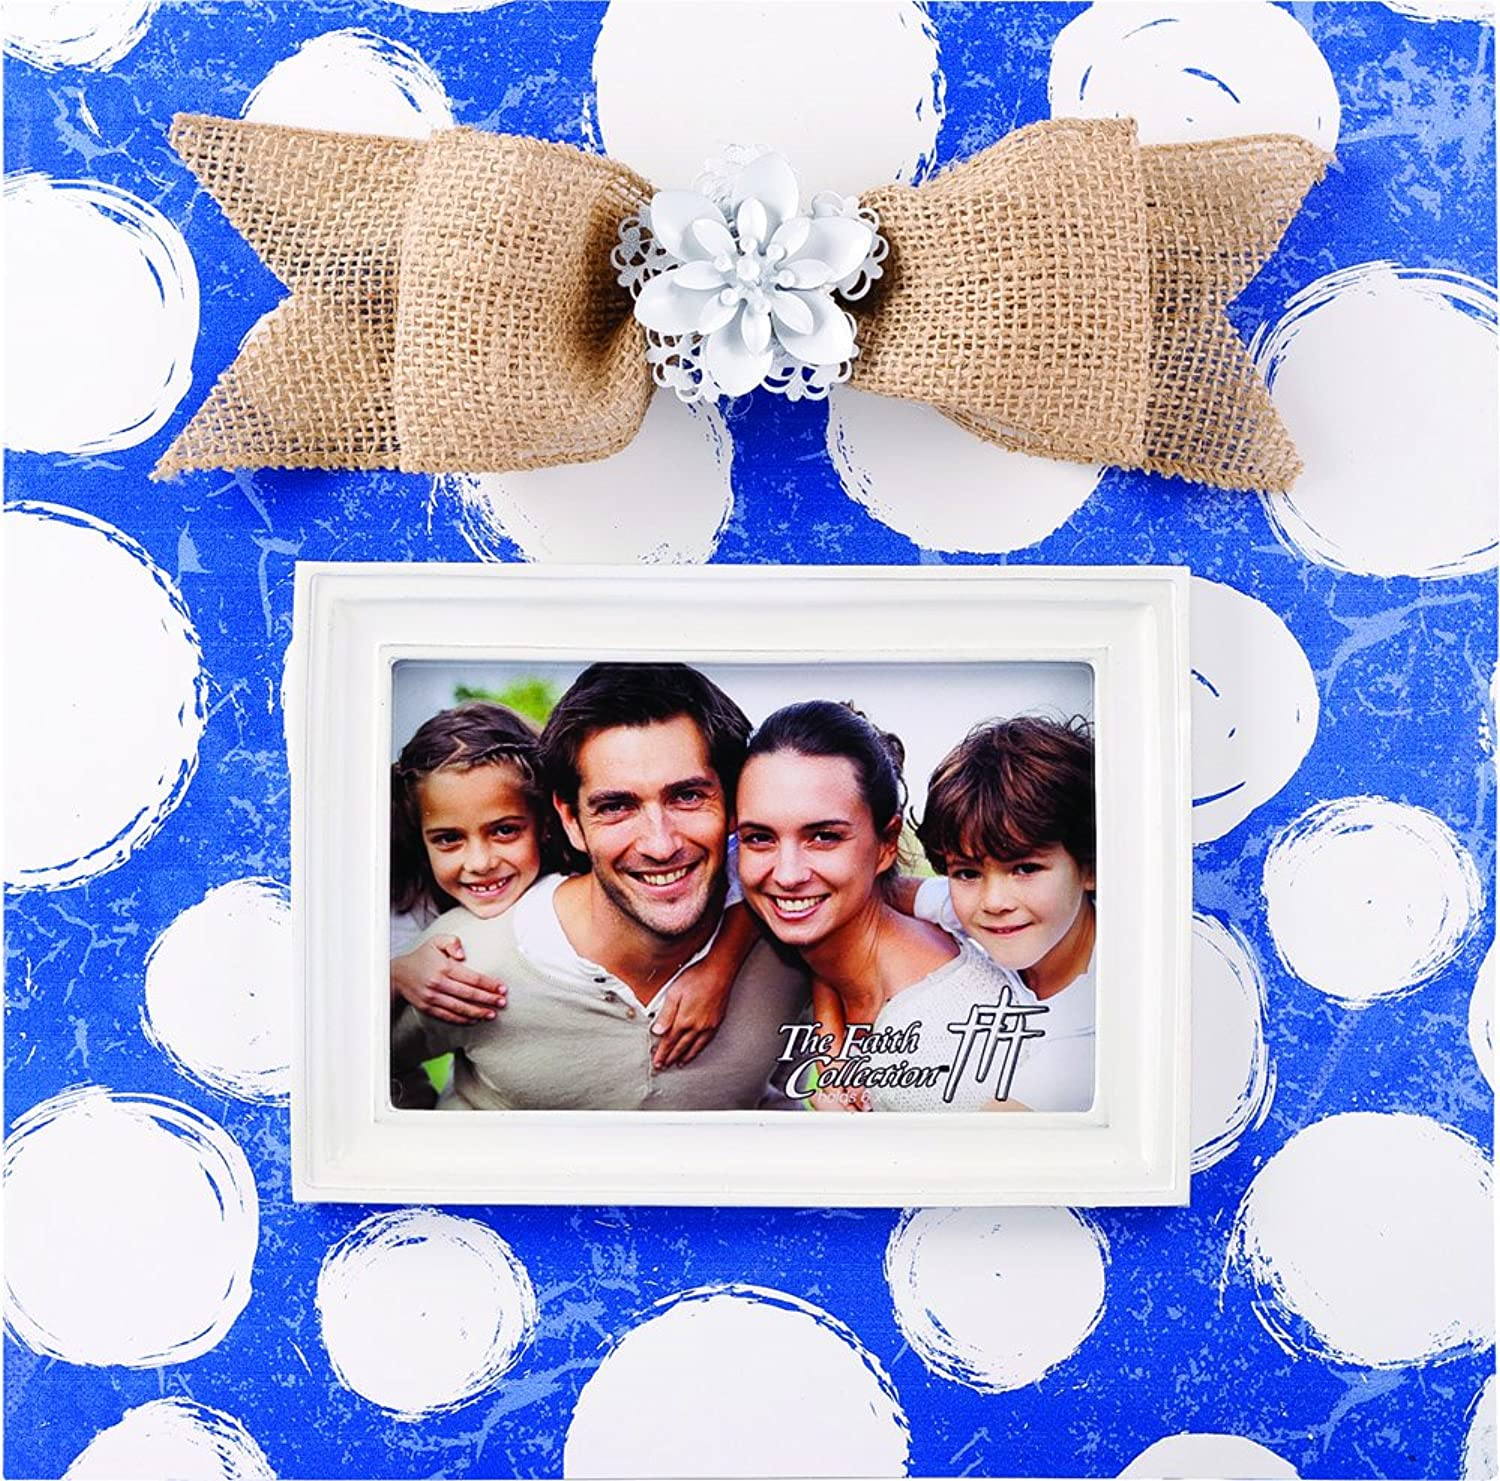 The Faith Collection Large Cobalt bluee Frame with White Flower, 6x 4